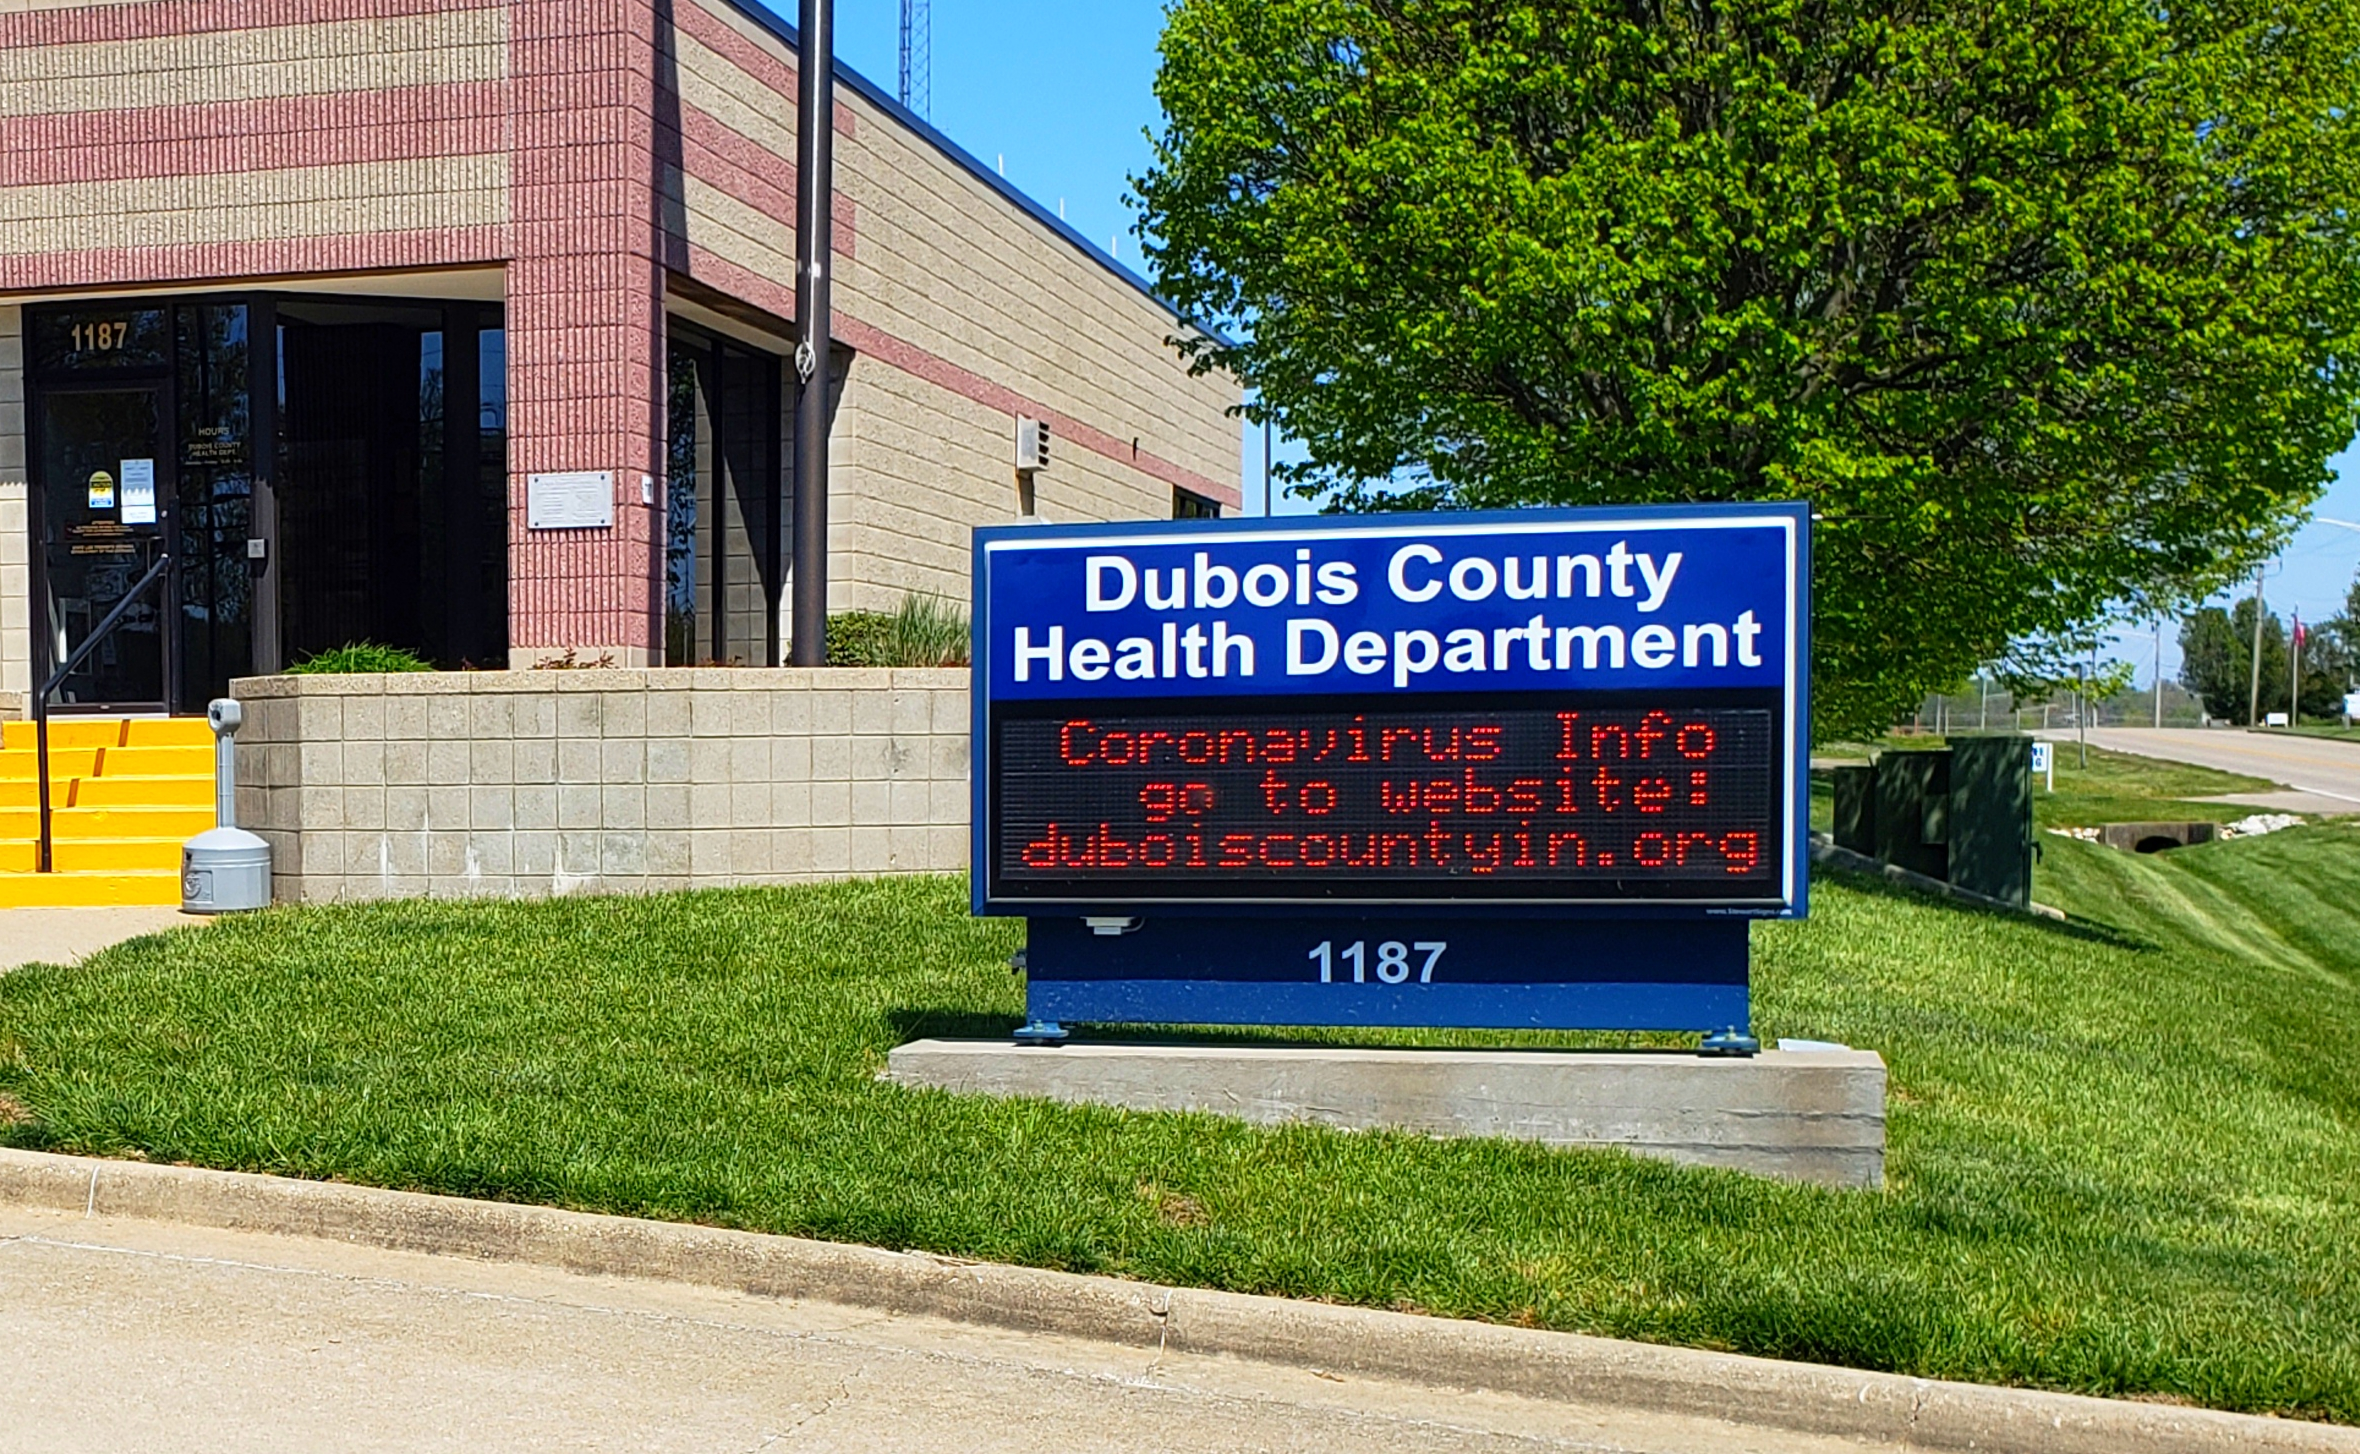 Dubois County Health Department Wants Youth Vaccinated For HPV to Prevent Certain Cancers